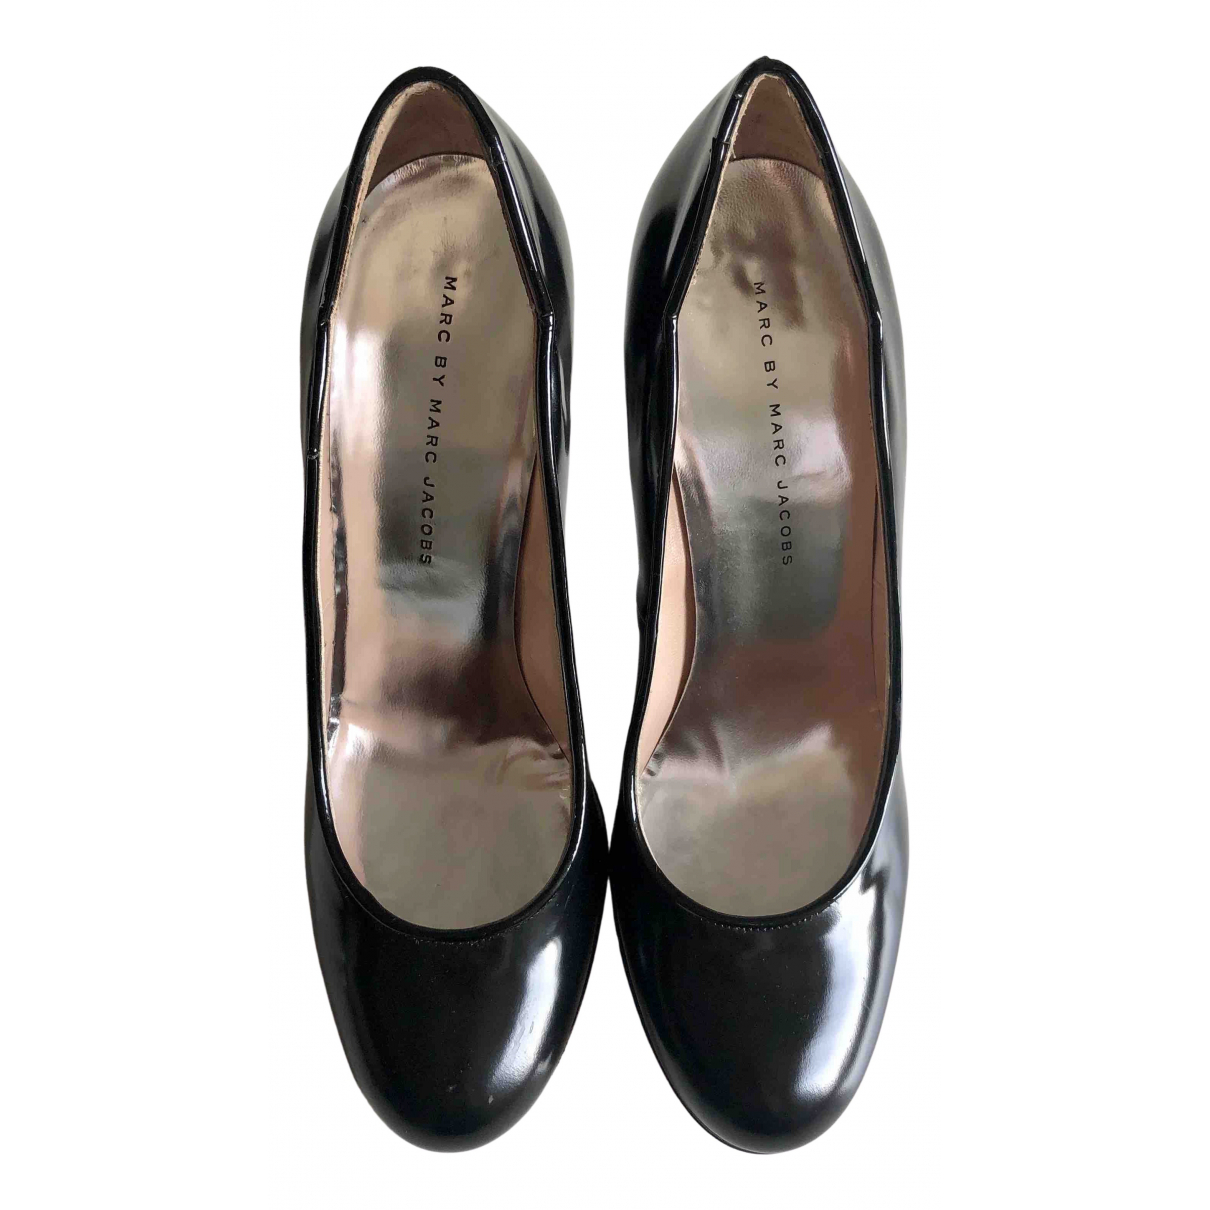 Marc By Marc Jacobs \N Black Patent leather Heels for Women 40 EU